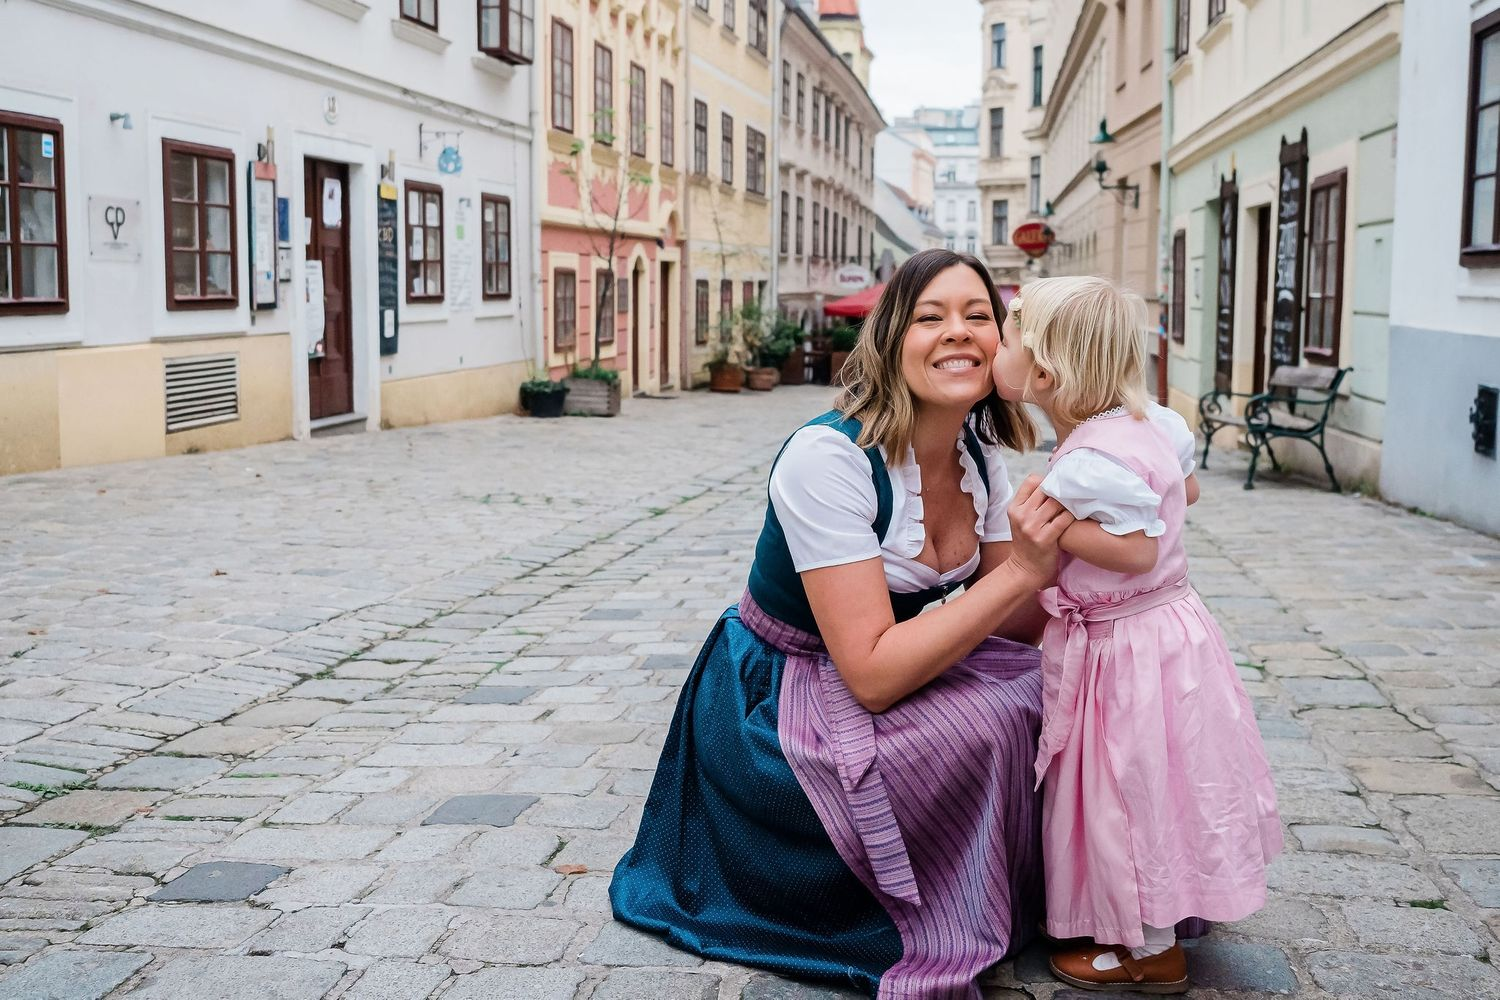 Mother and daughter in a street in Vienna wearing traditional outfit Dirndl